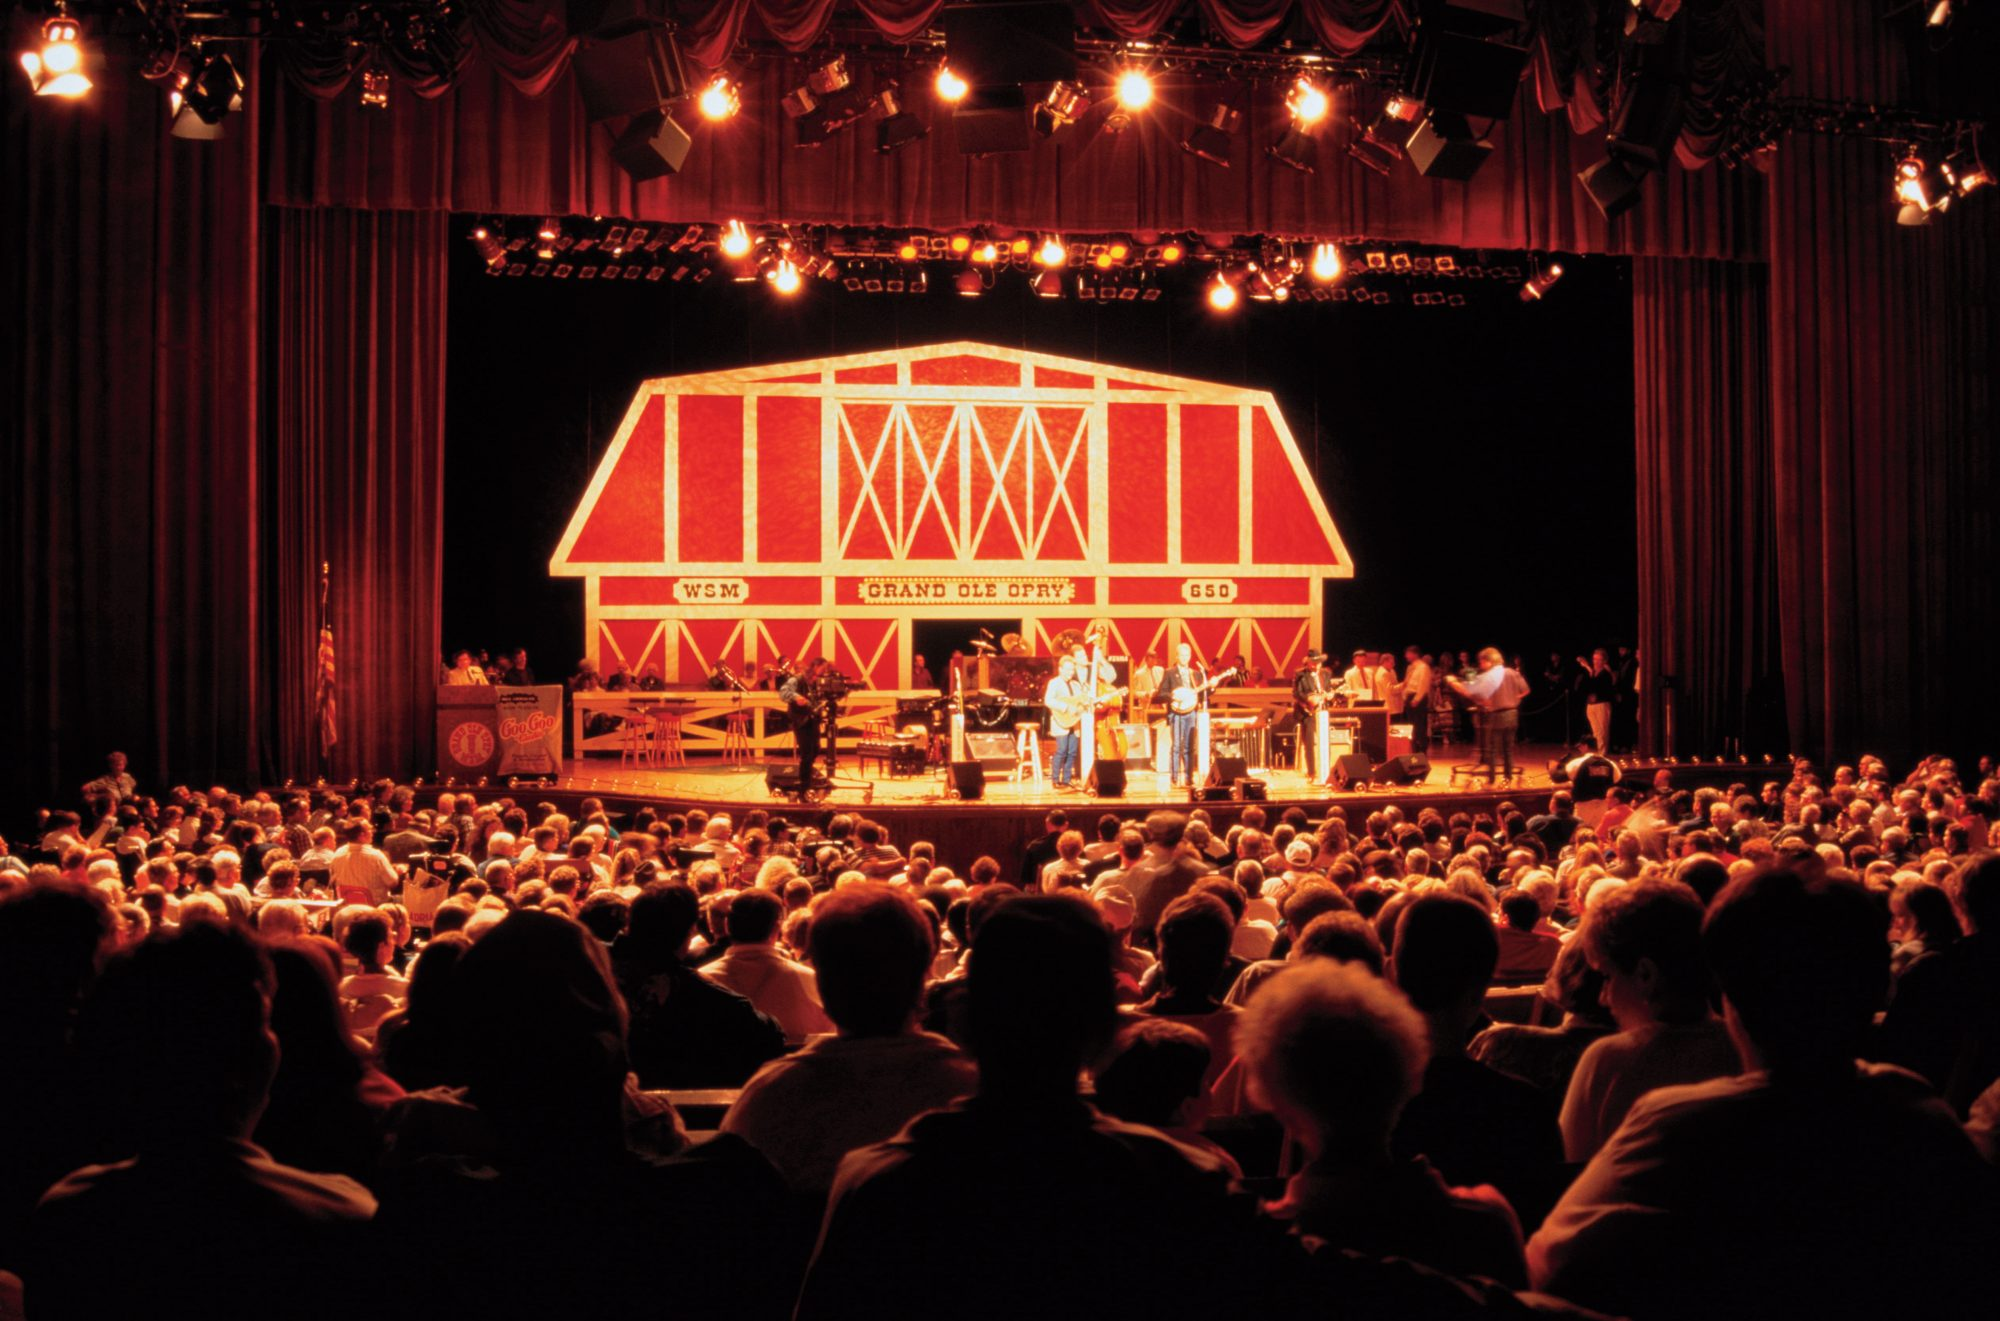 15. See a show at the Grand Ole Opry